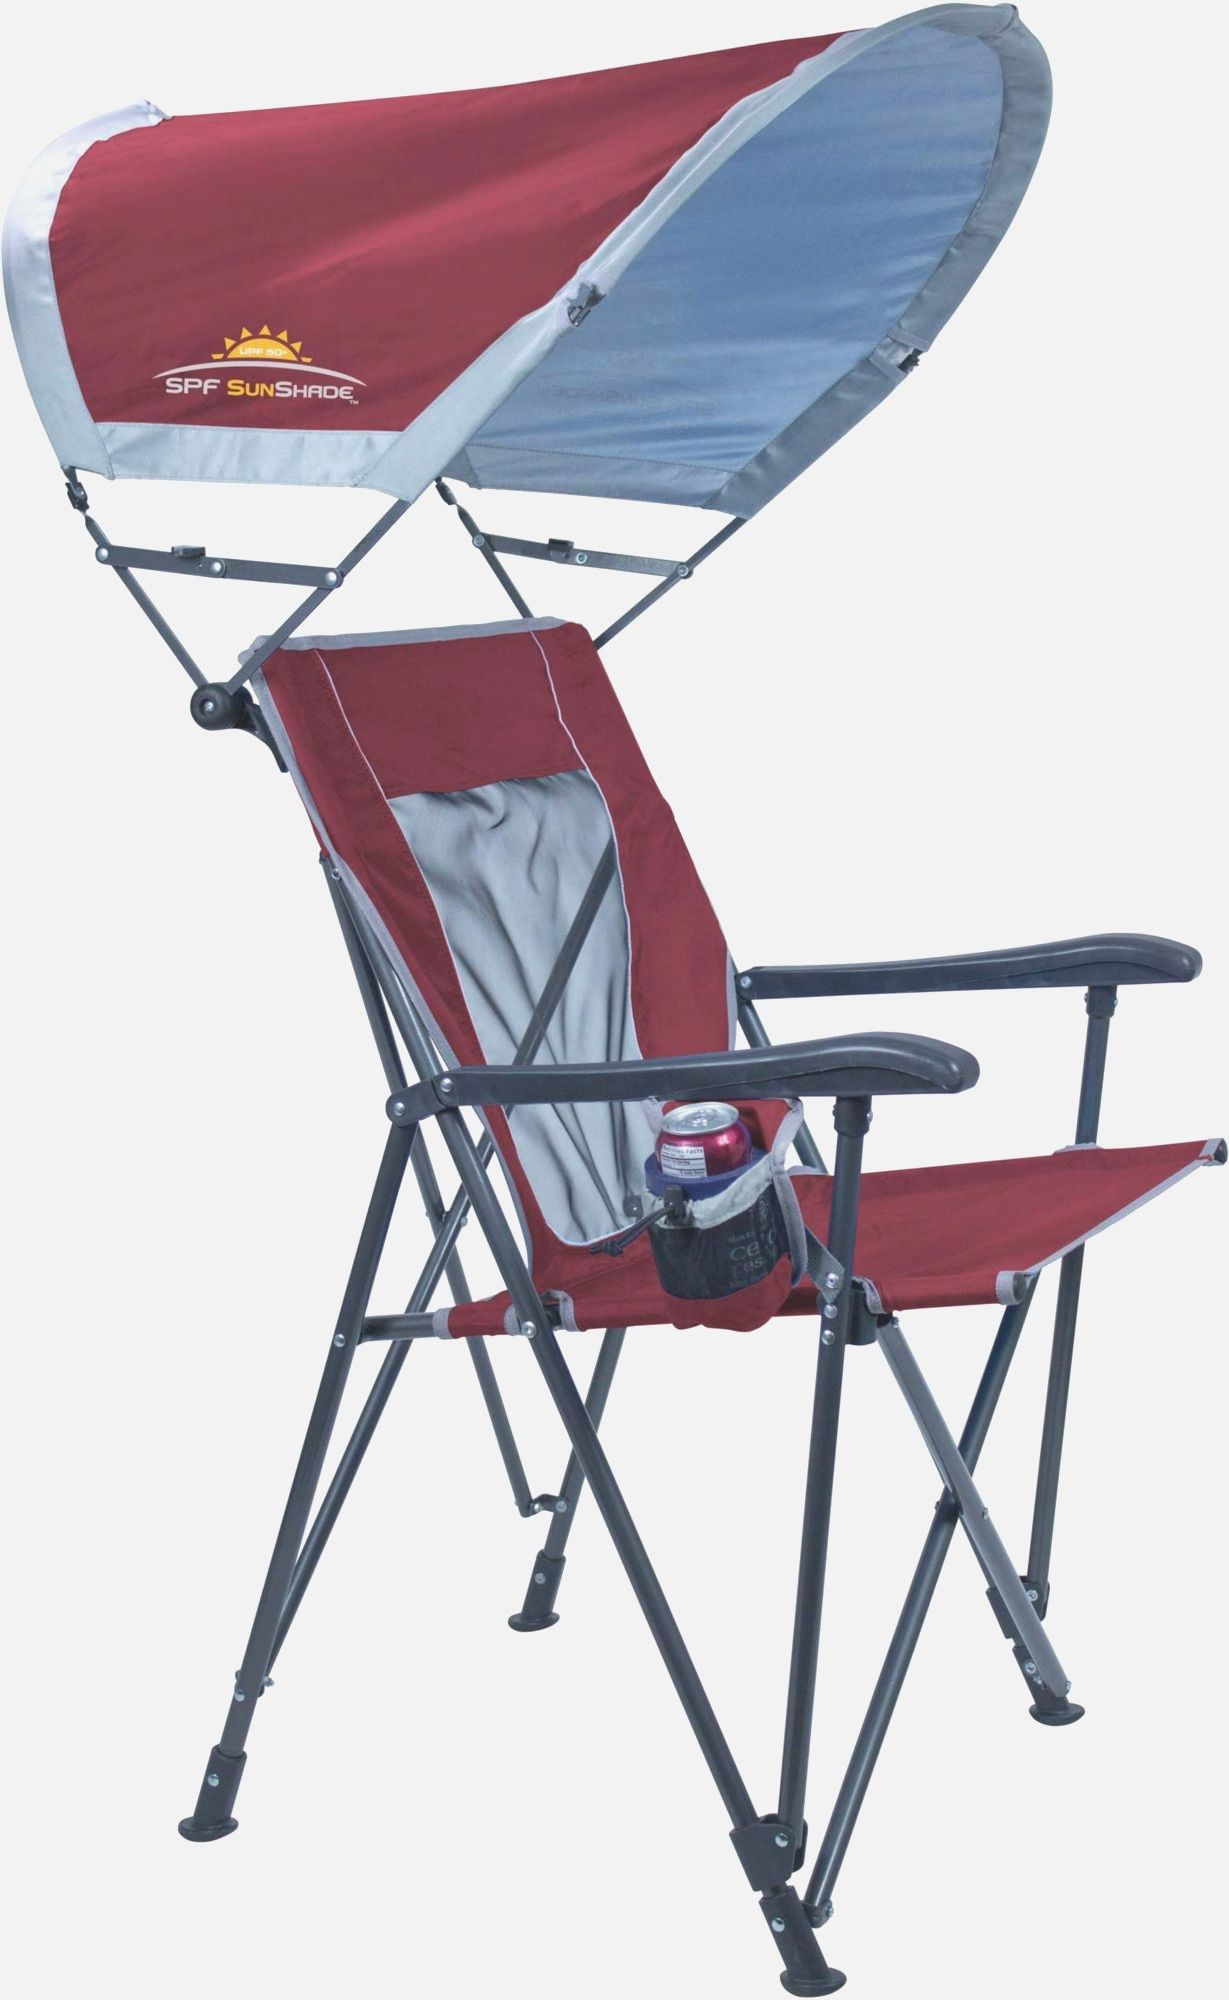 Big Folding Chairs Wheelchair With Pot And Tall Lawn Furniture Patio